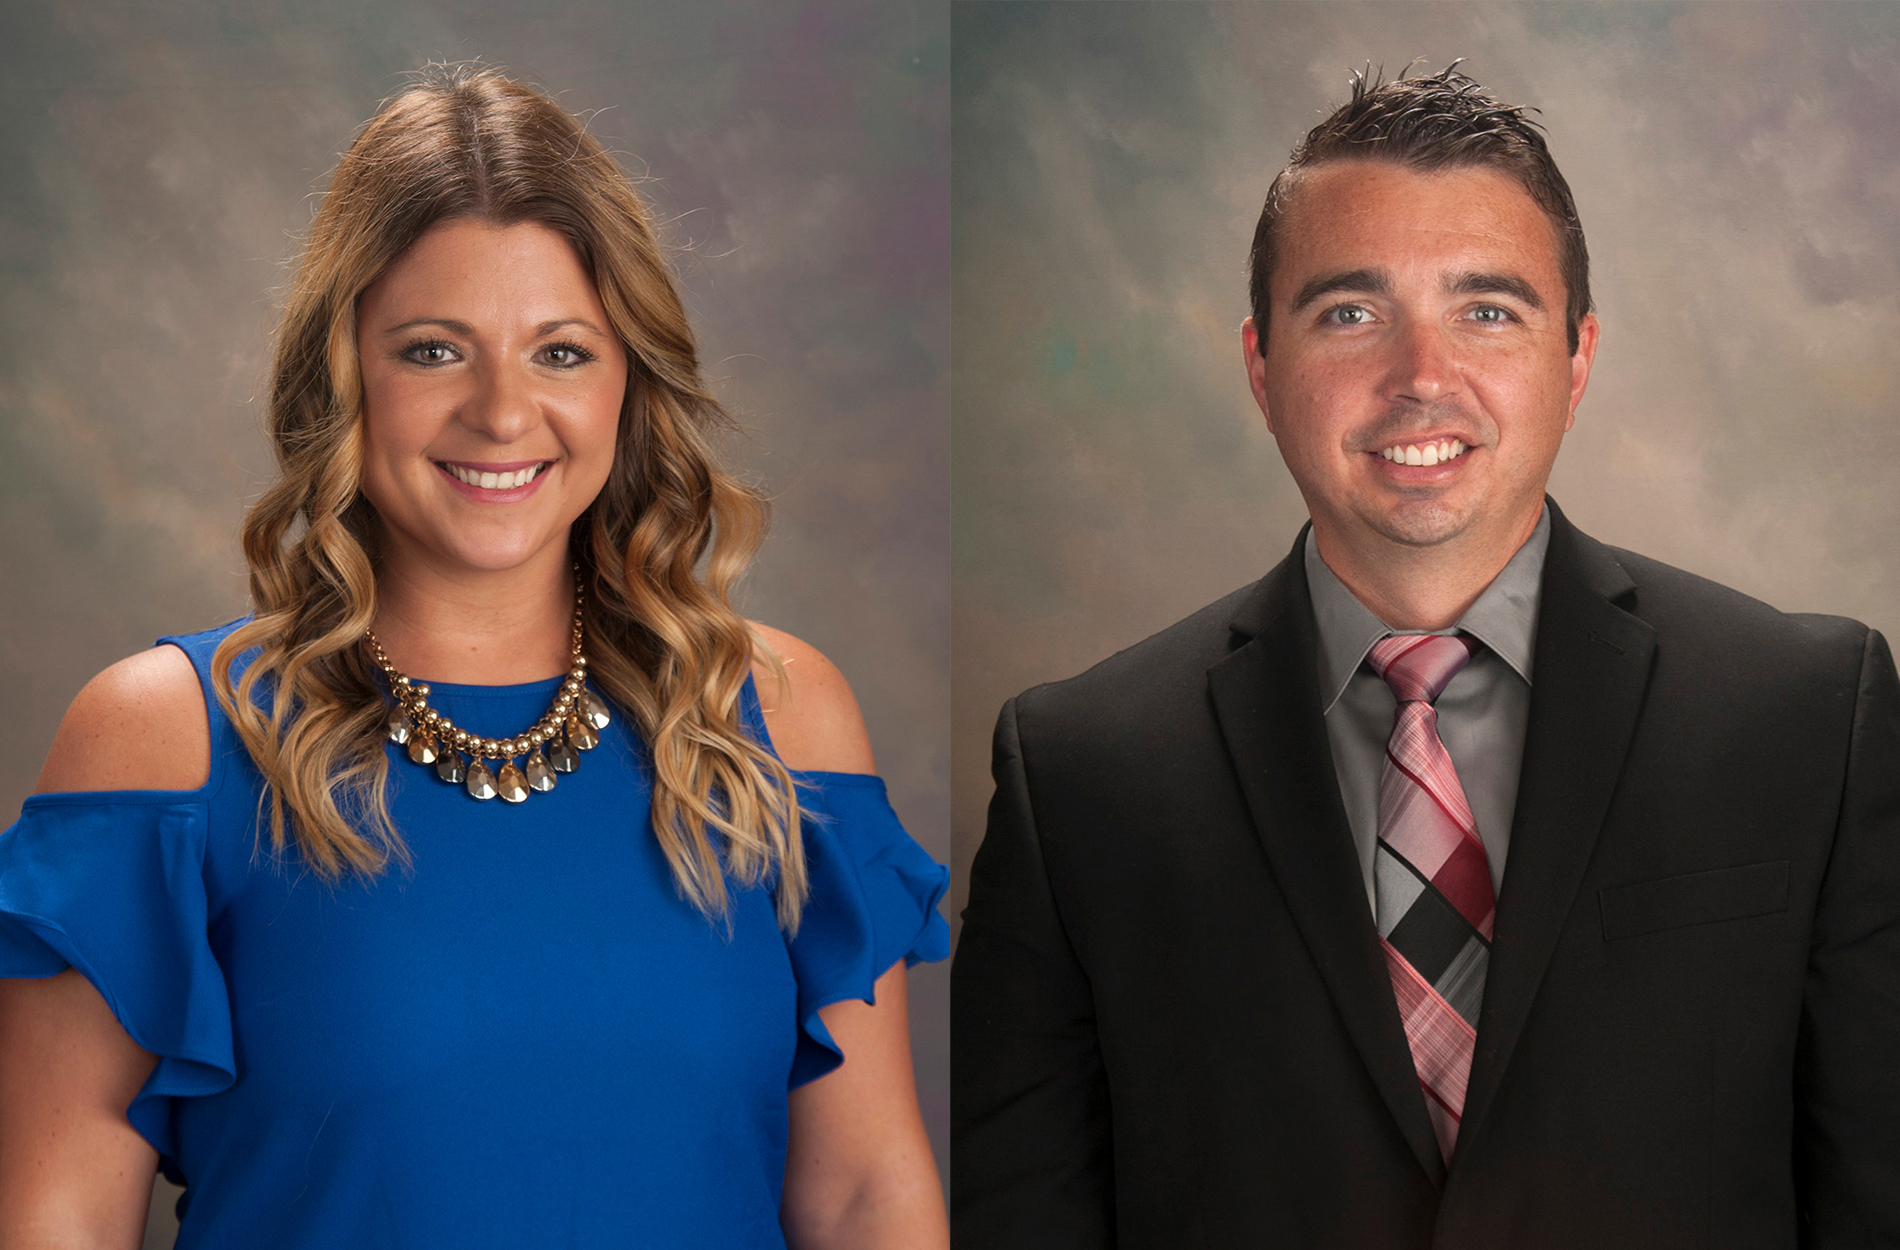 Head shots of Dr. Candace Prince and Dr. Joshua Prince